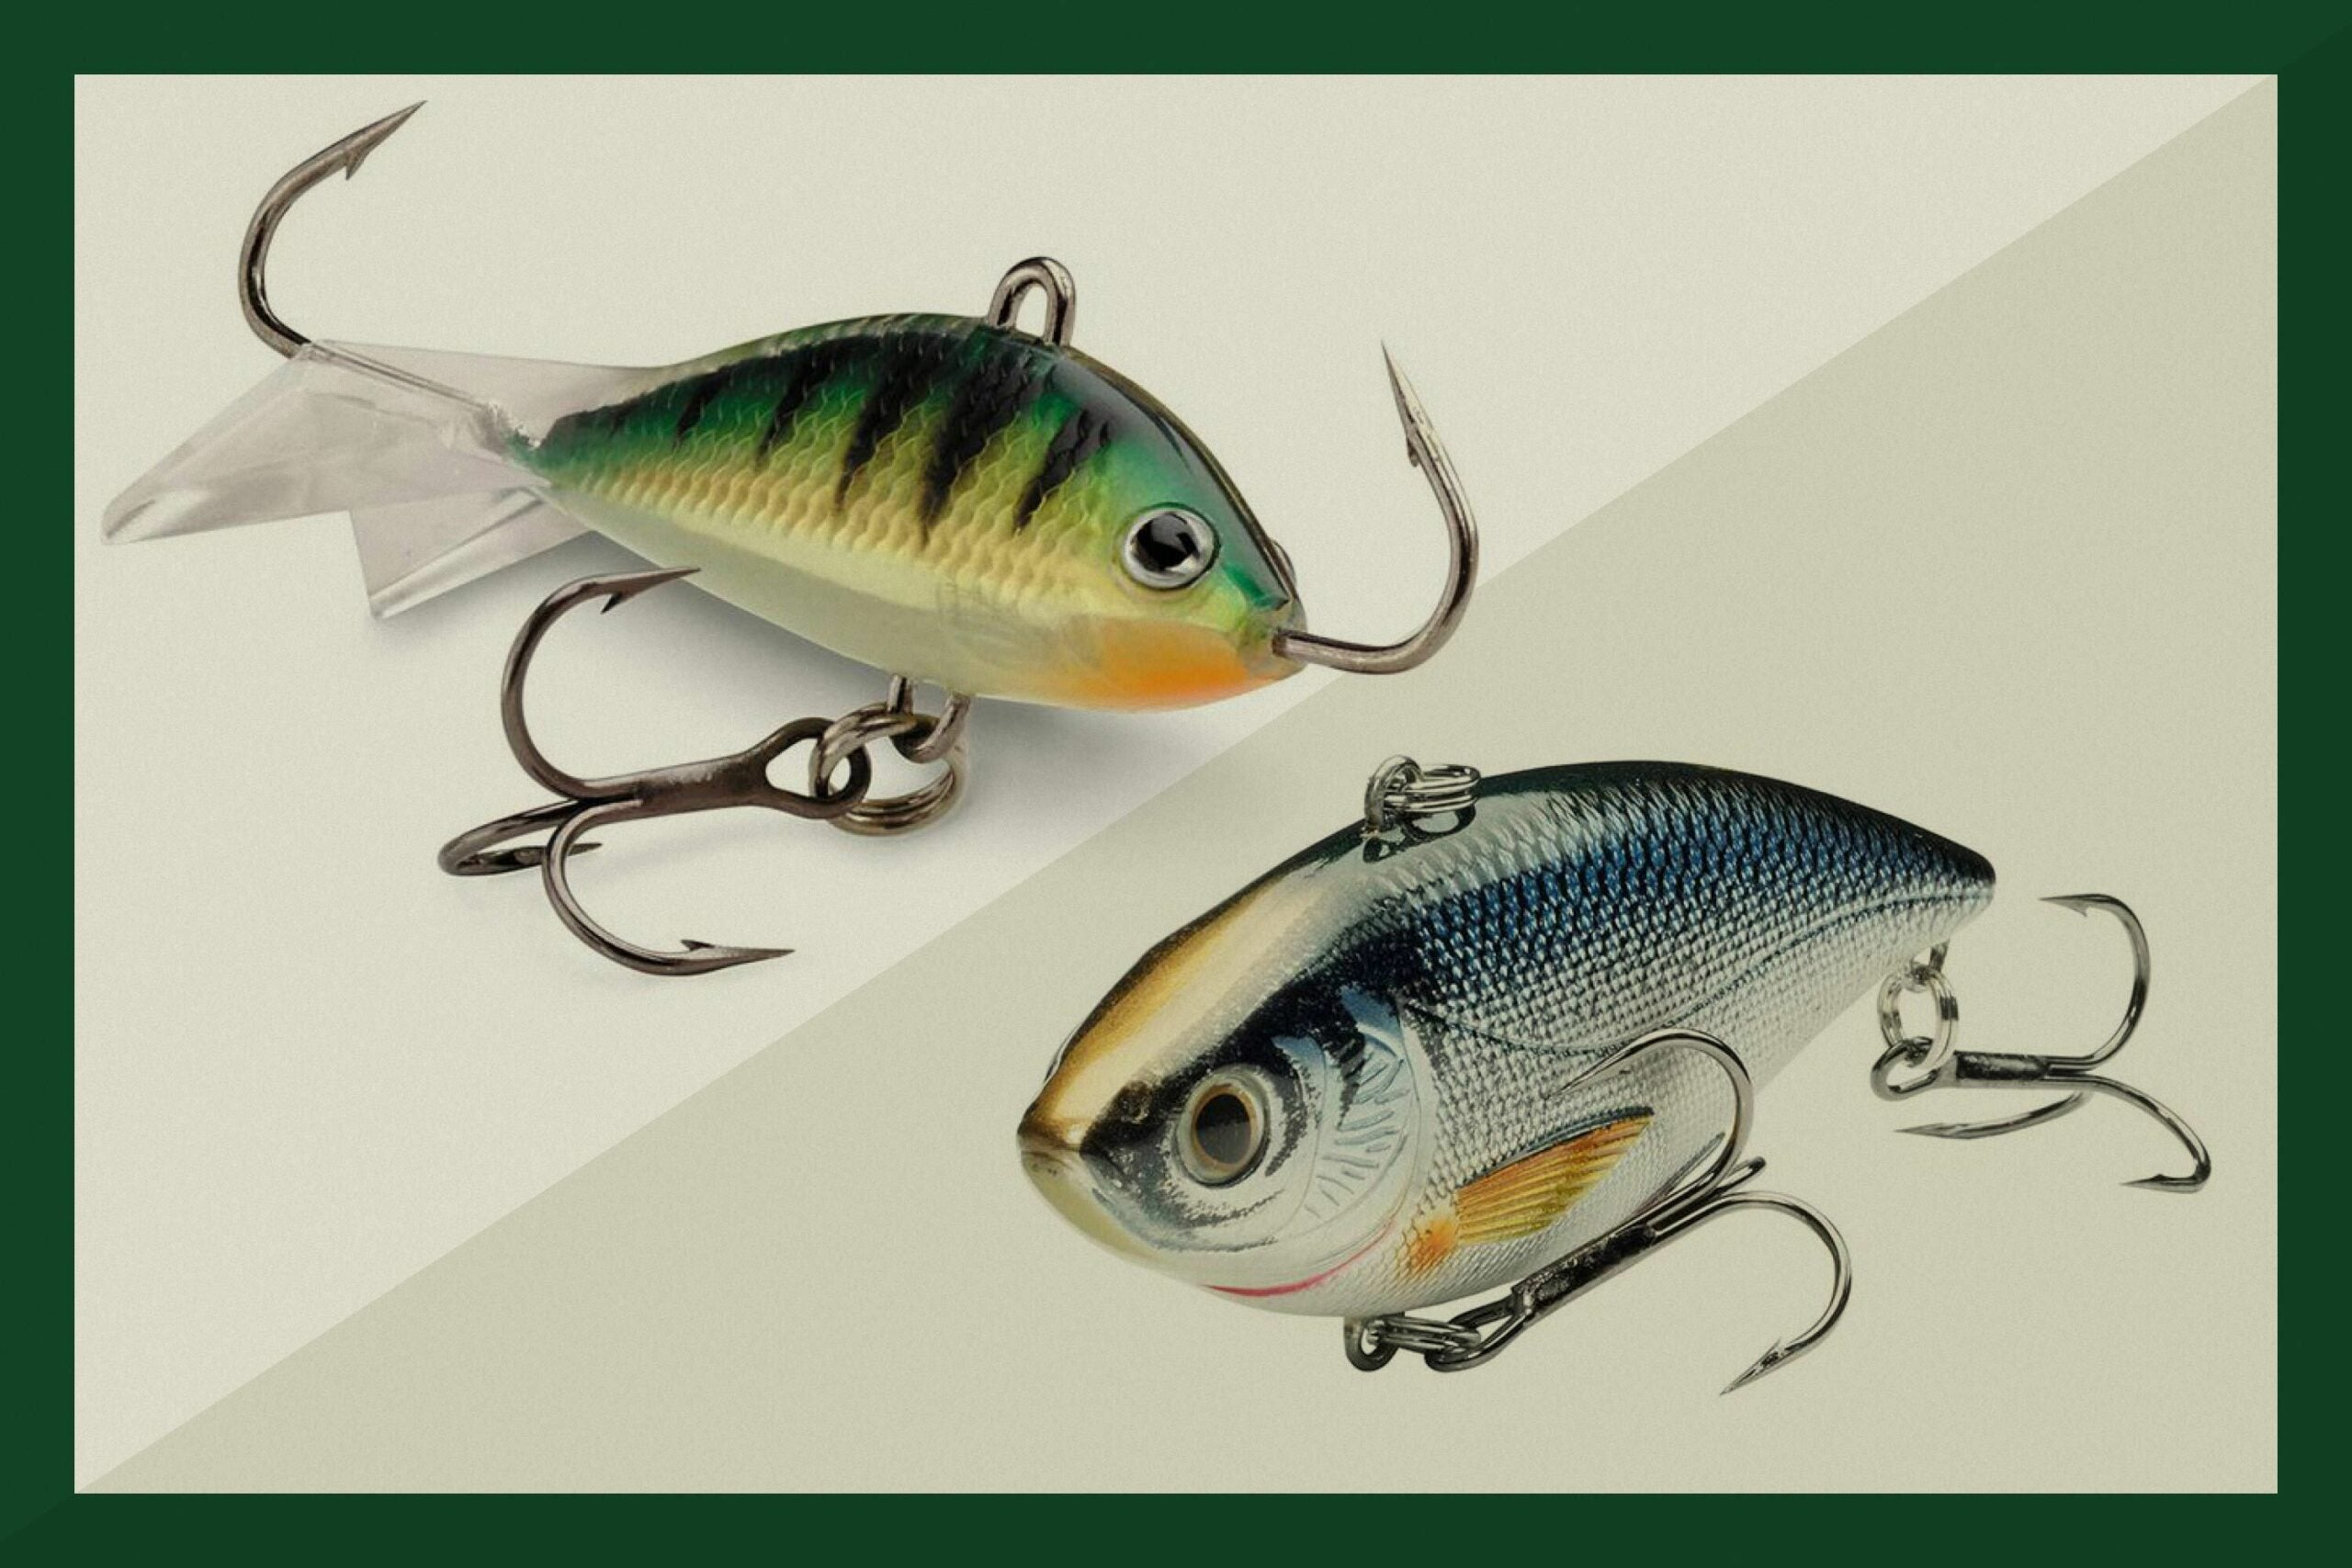 Two fishing lures on a tan background.